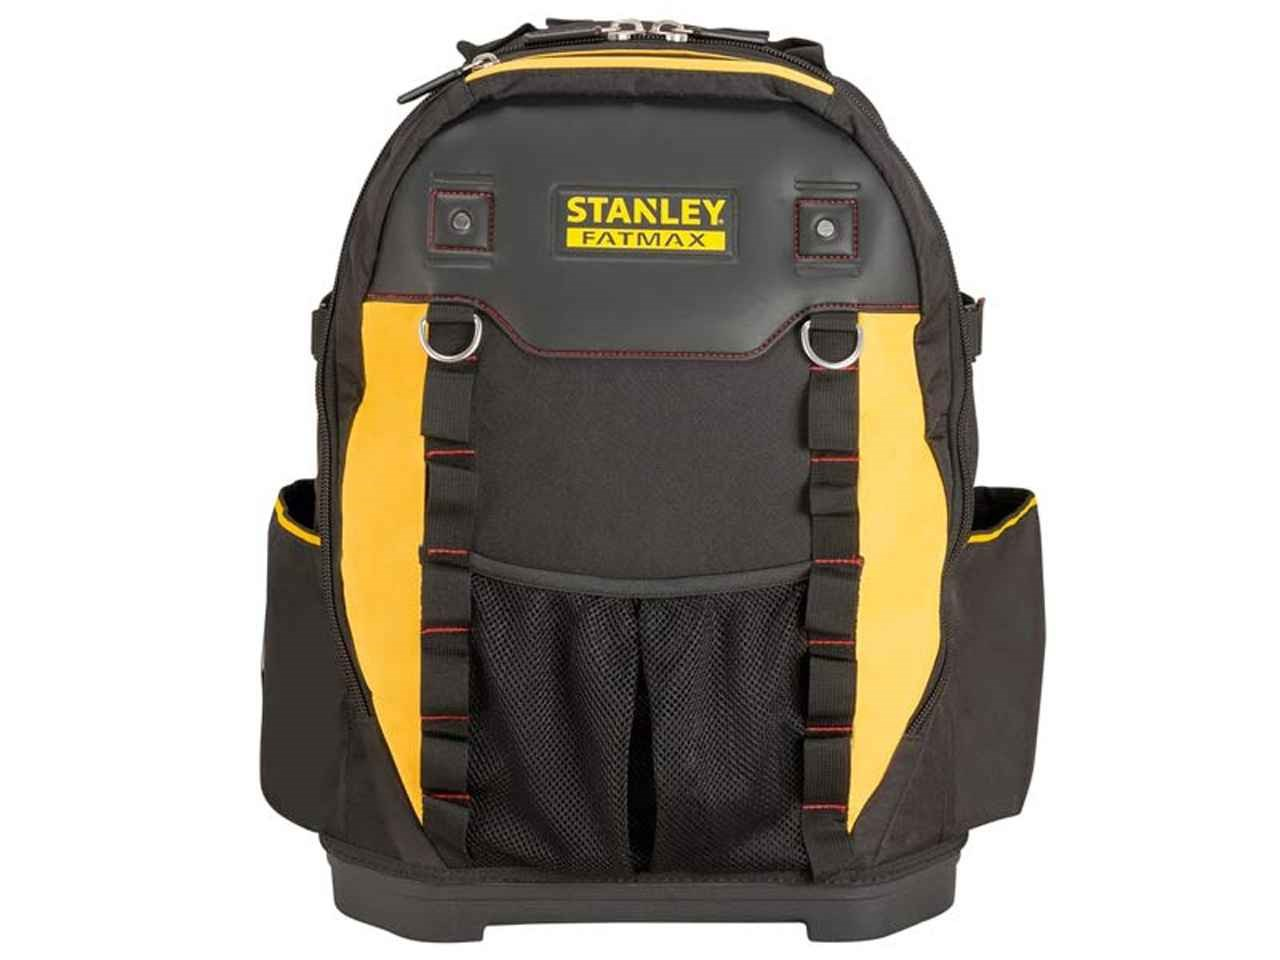 stanley sta195611 fatmax tool technicians ruck sack backpack. Black Bedroom Furniture Sets. Home Design Ideas